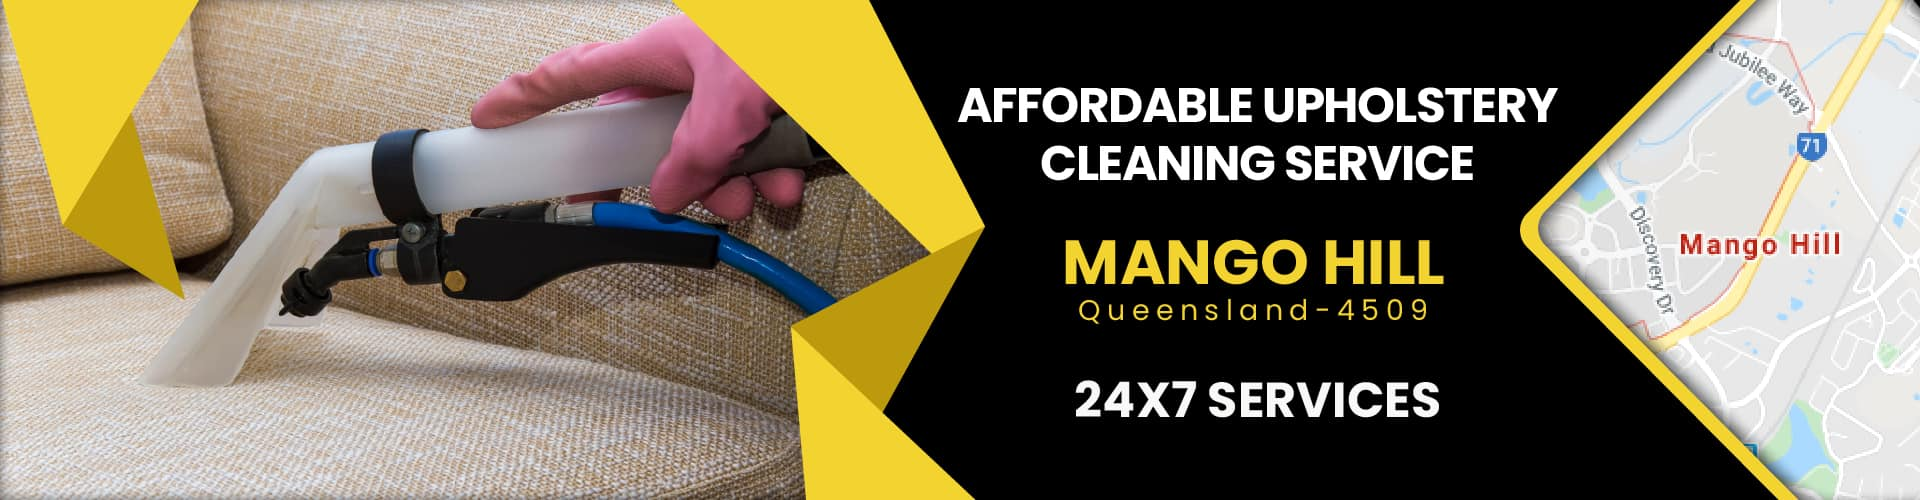 Upholstery Cleaning Mango Hill